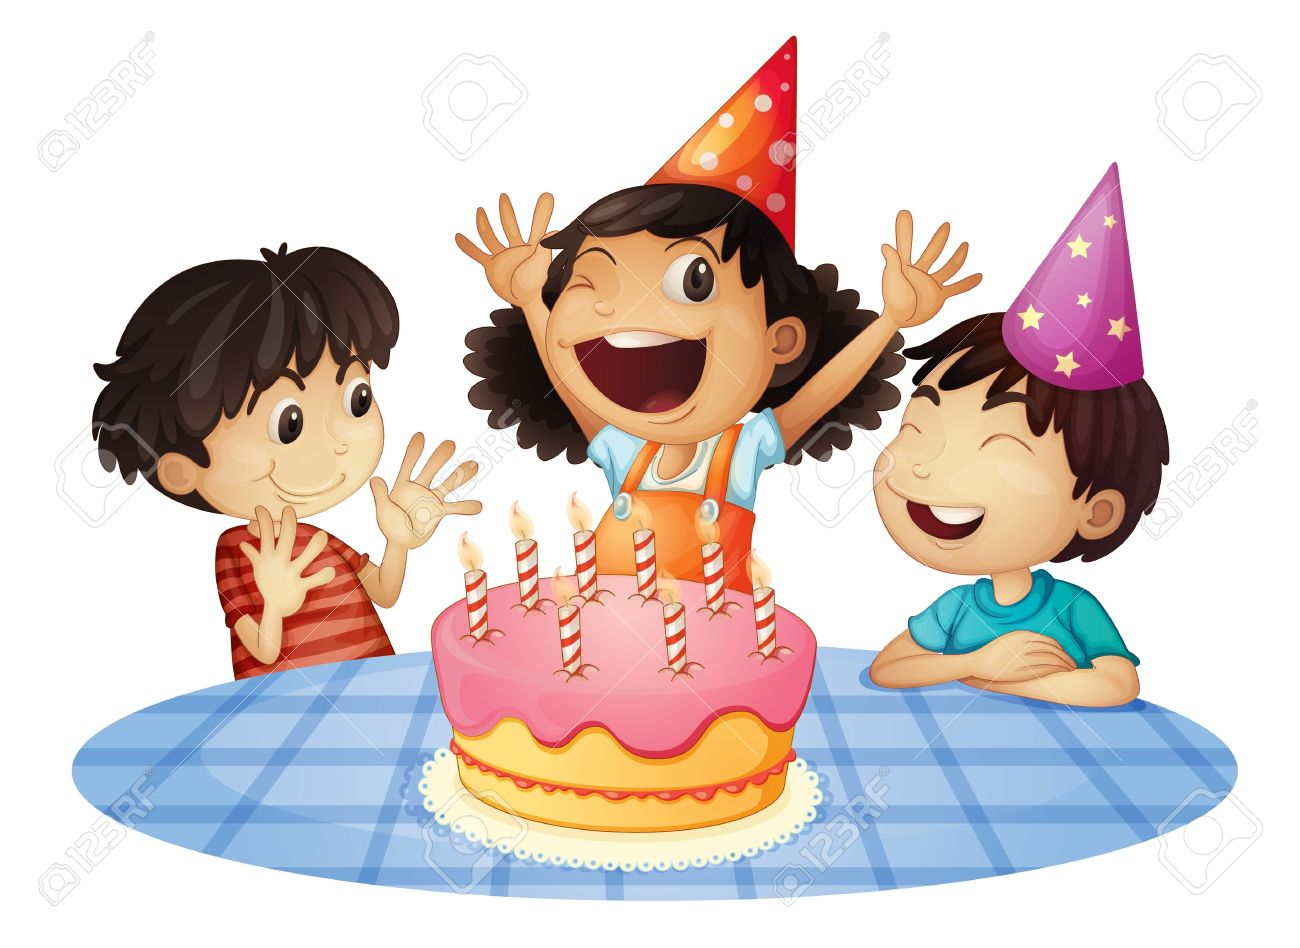 Young Kids At A Birthday Party Royalty Free Cliparts Vectors And